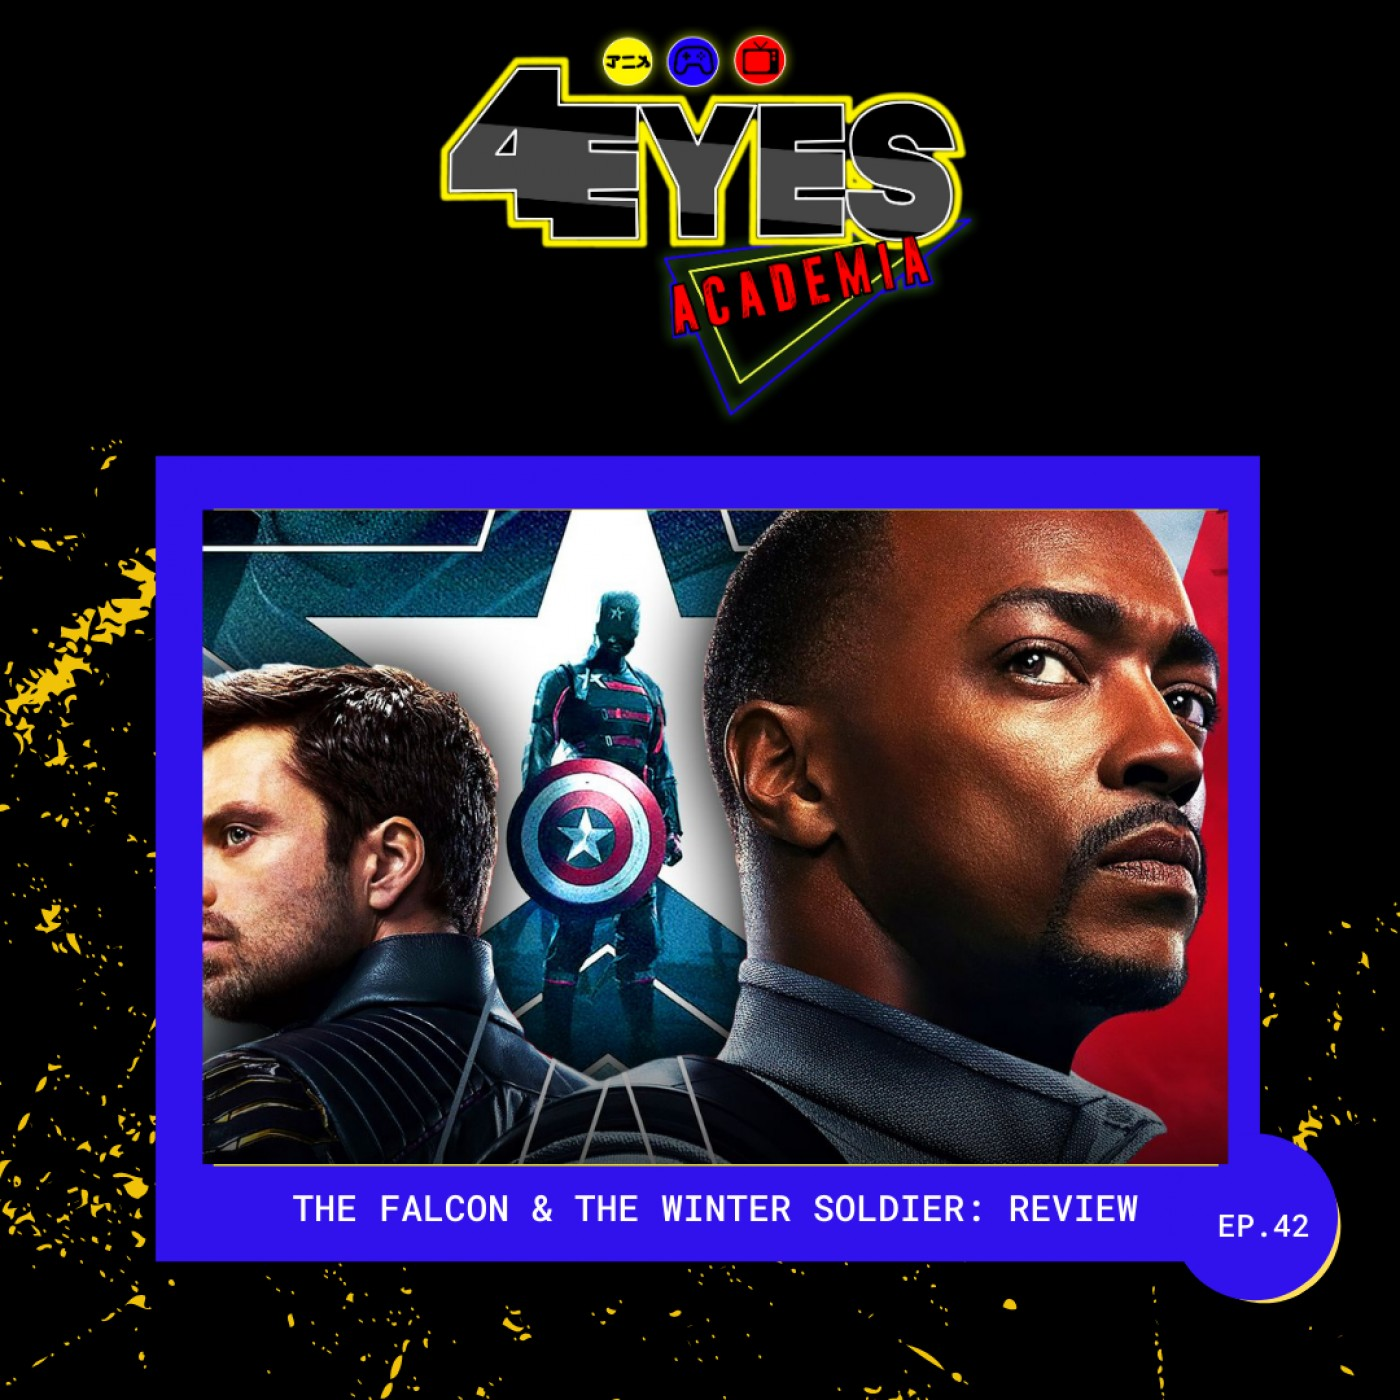 The Falcon & The Winter Soldier: Review    Episode 42